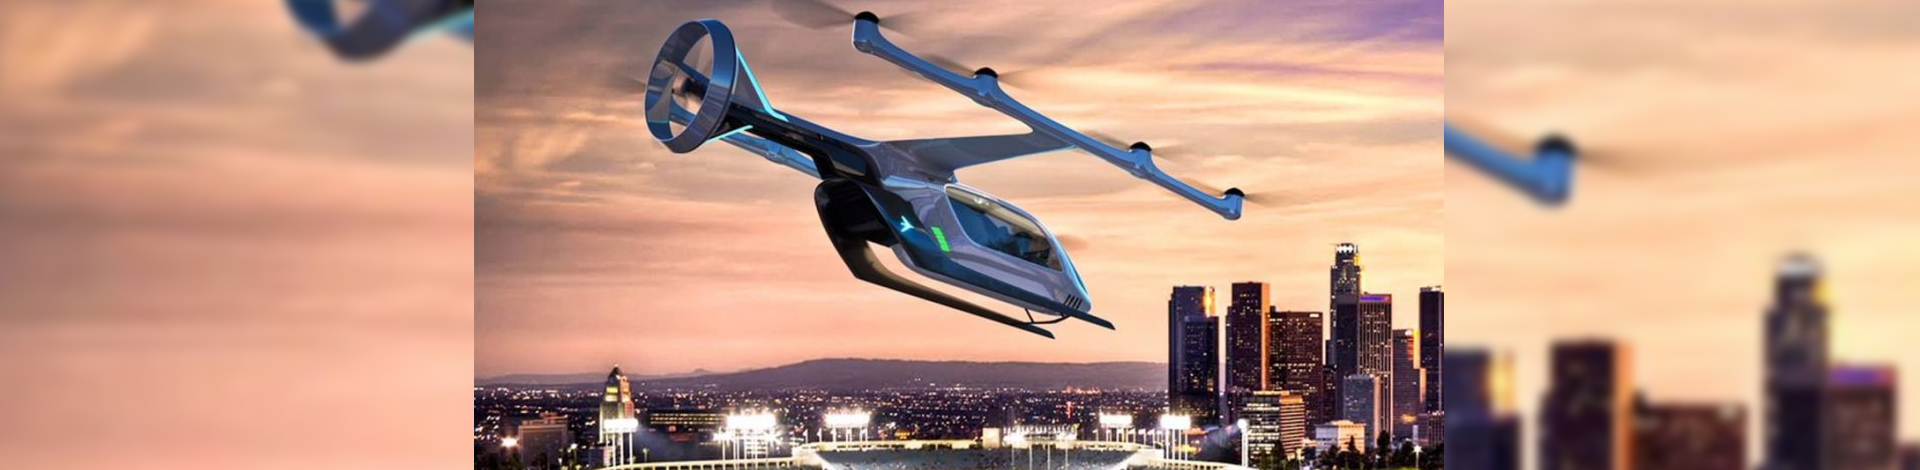 Flying Taxis in Paris